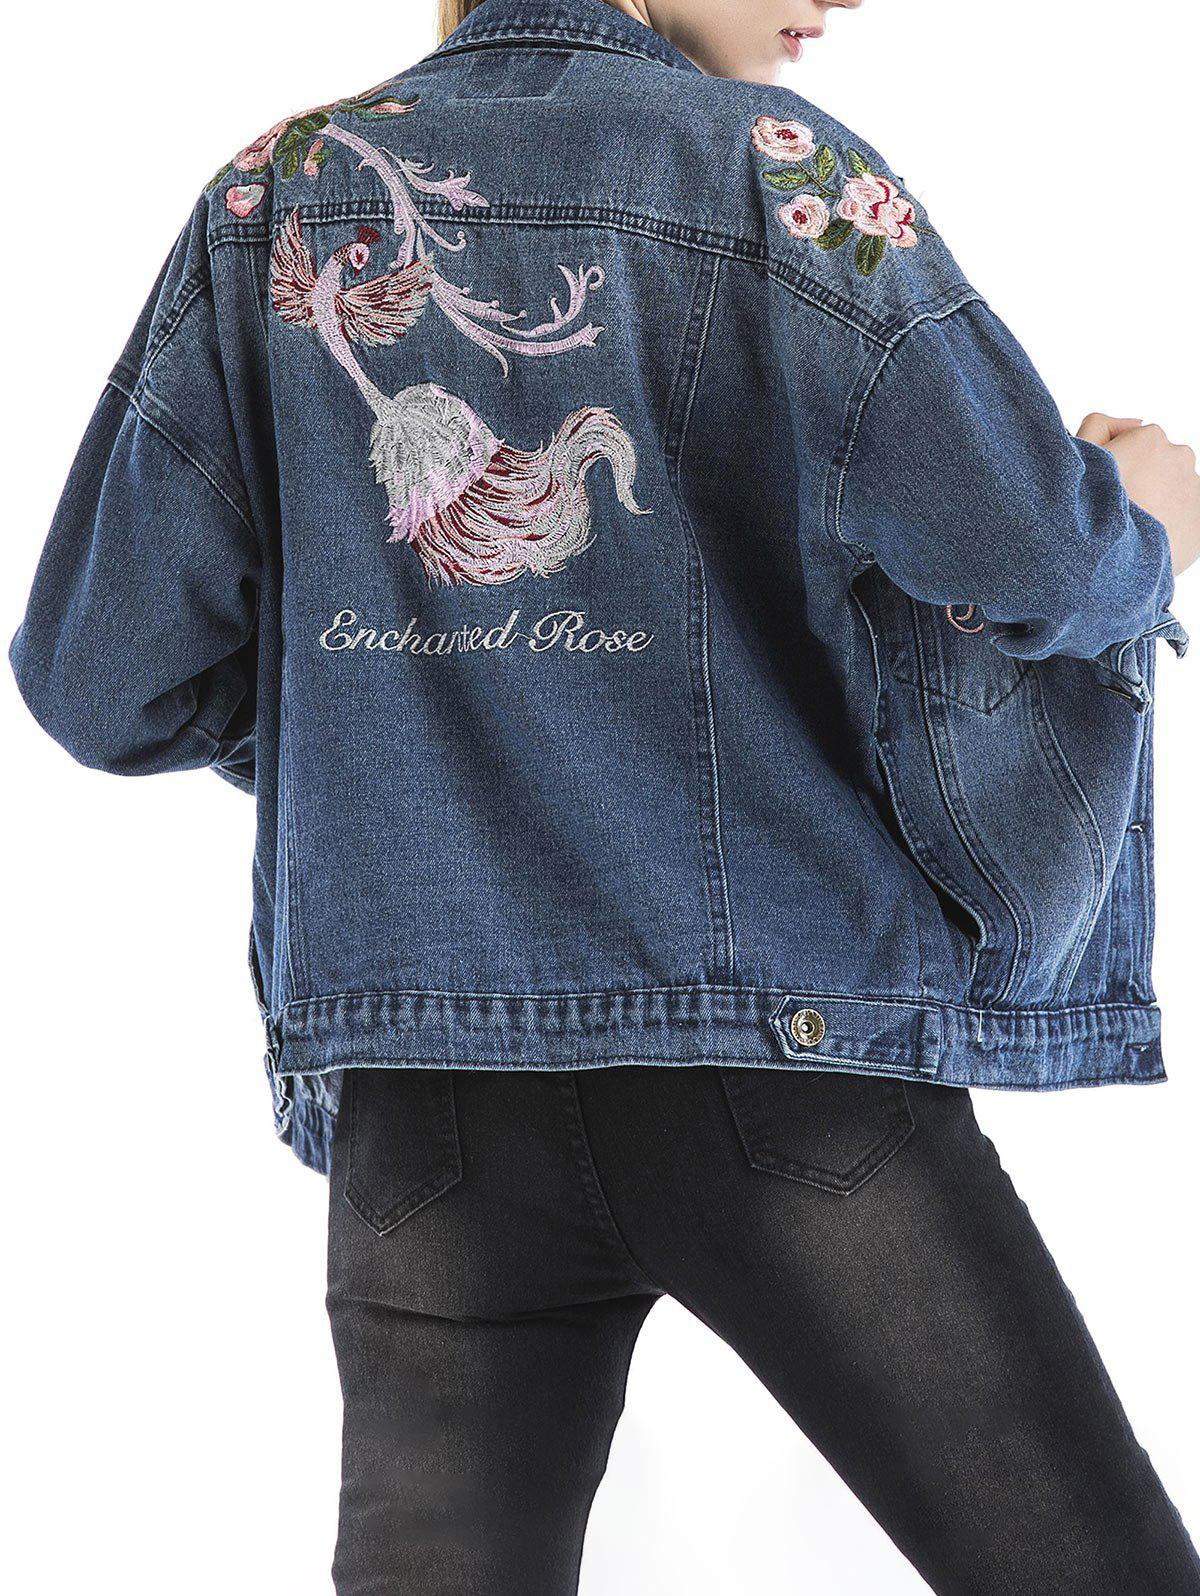 Chic Embroidered Ripped Denim Jacket